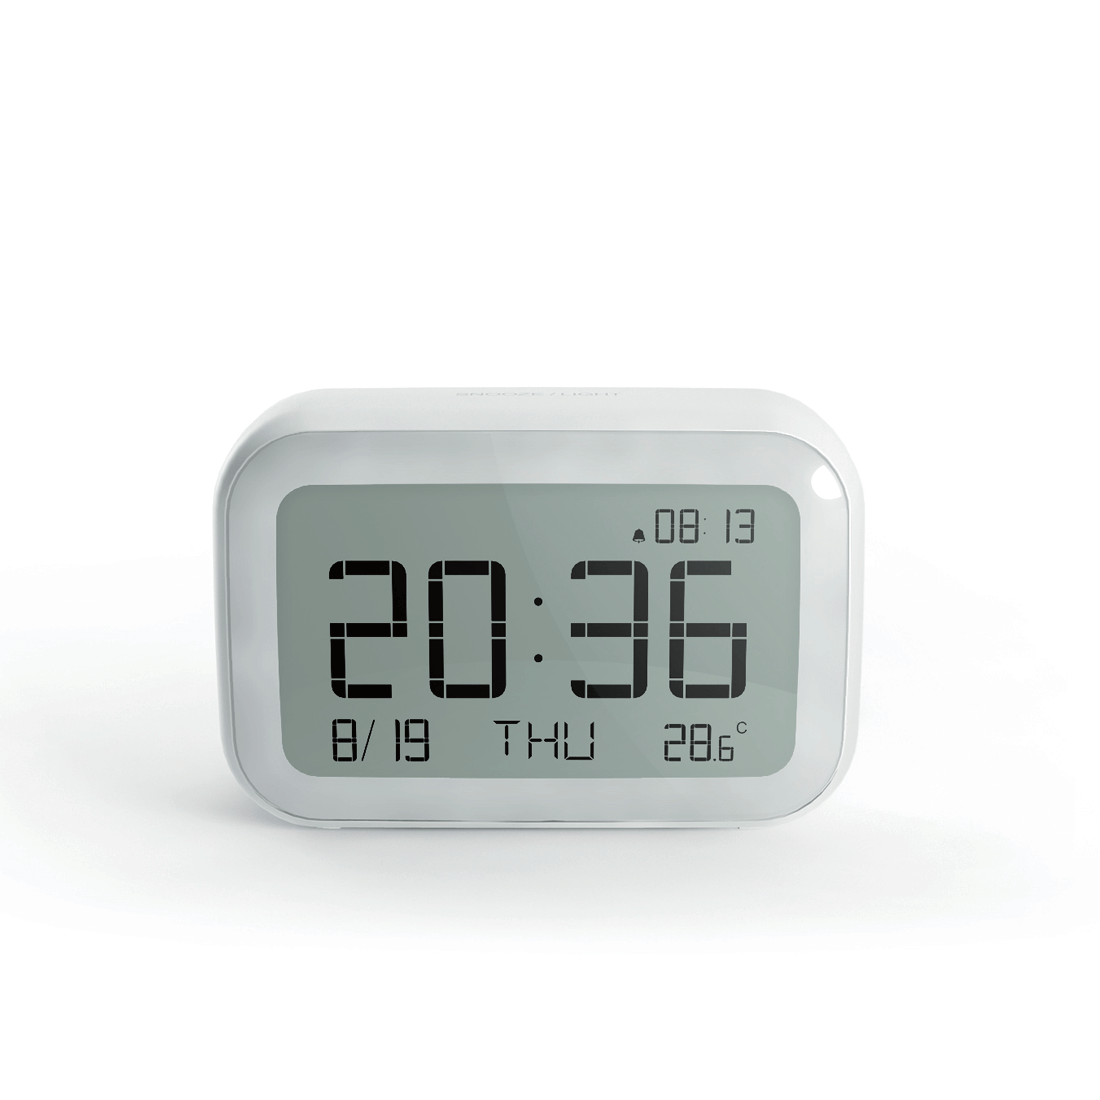 Modern Digital Clocks Wireless Weather Station Digital Alarm Clock Air Quality